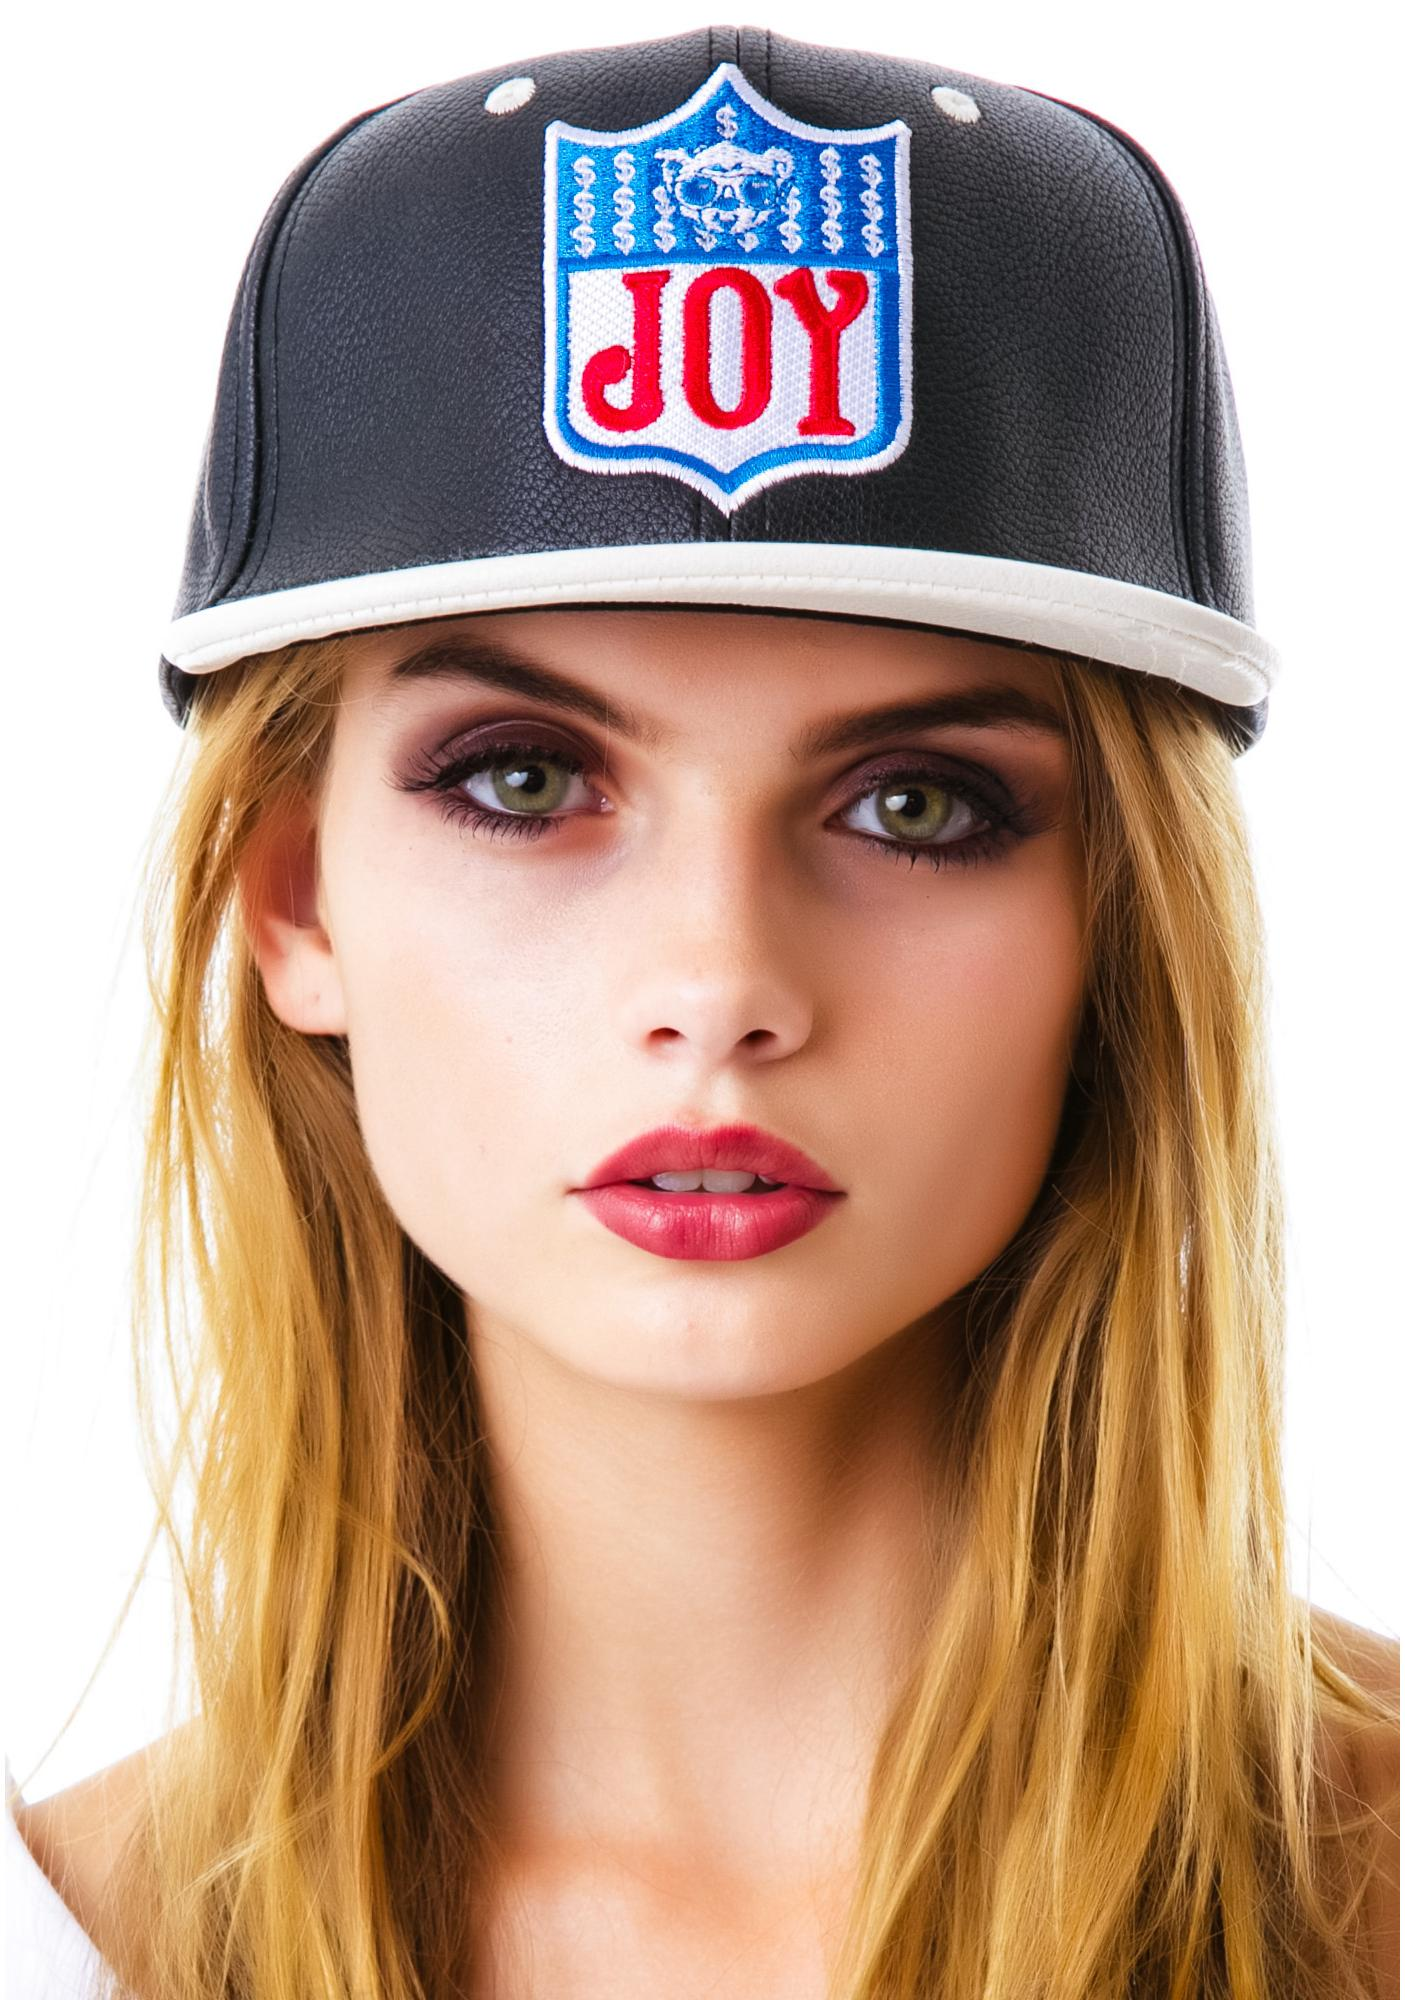 Joyrich Joy Team Logo Snapback